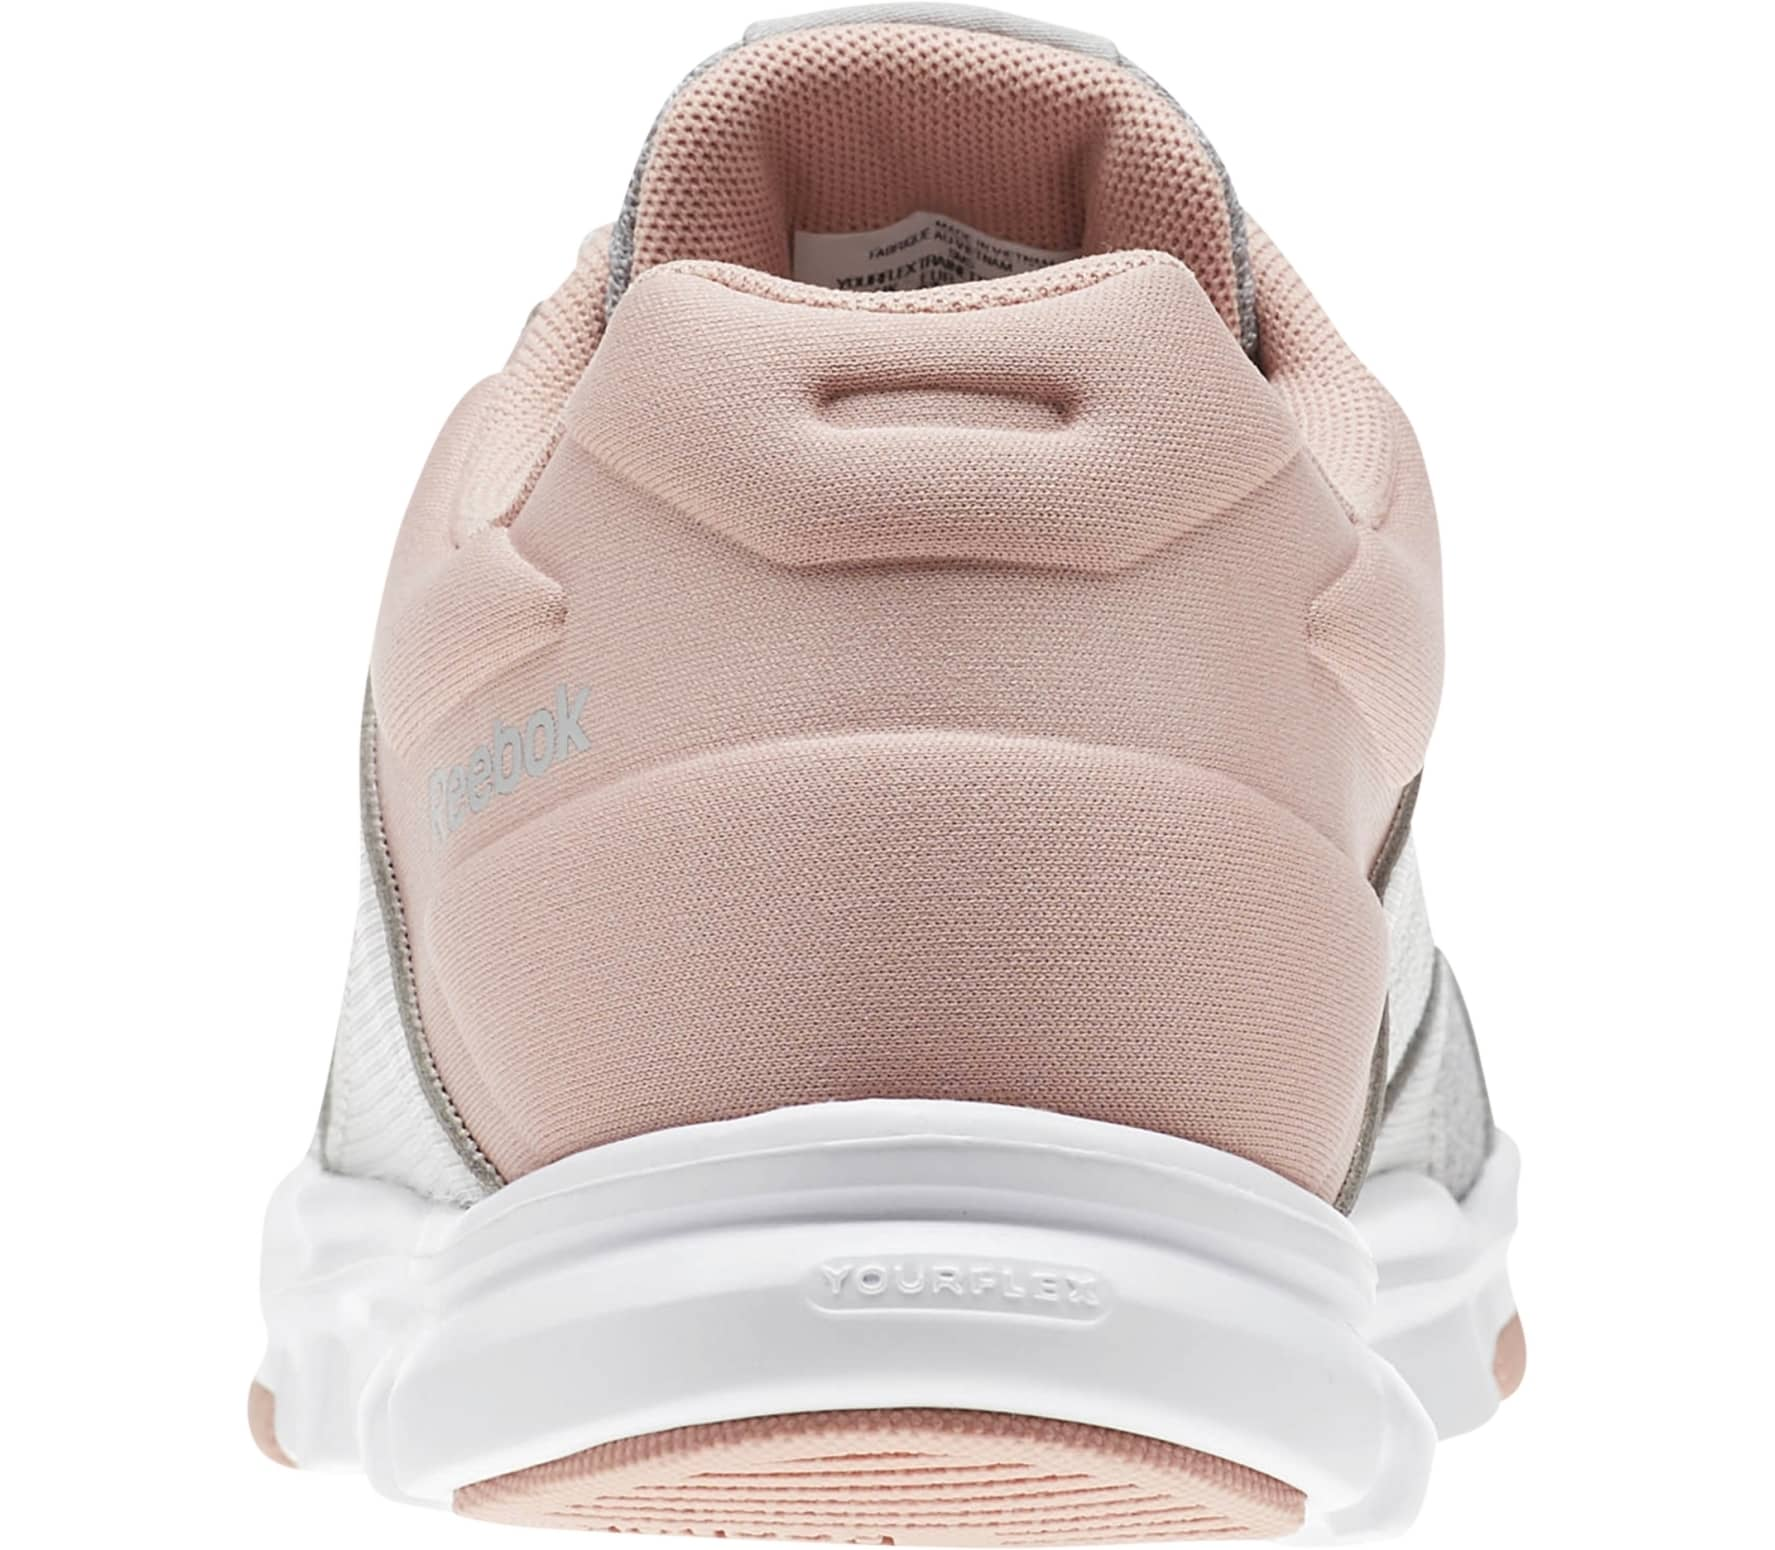 4a94cd7096f9 Reebok - Yourflex Trainette 10 MT women s training shoes (white pink)